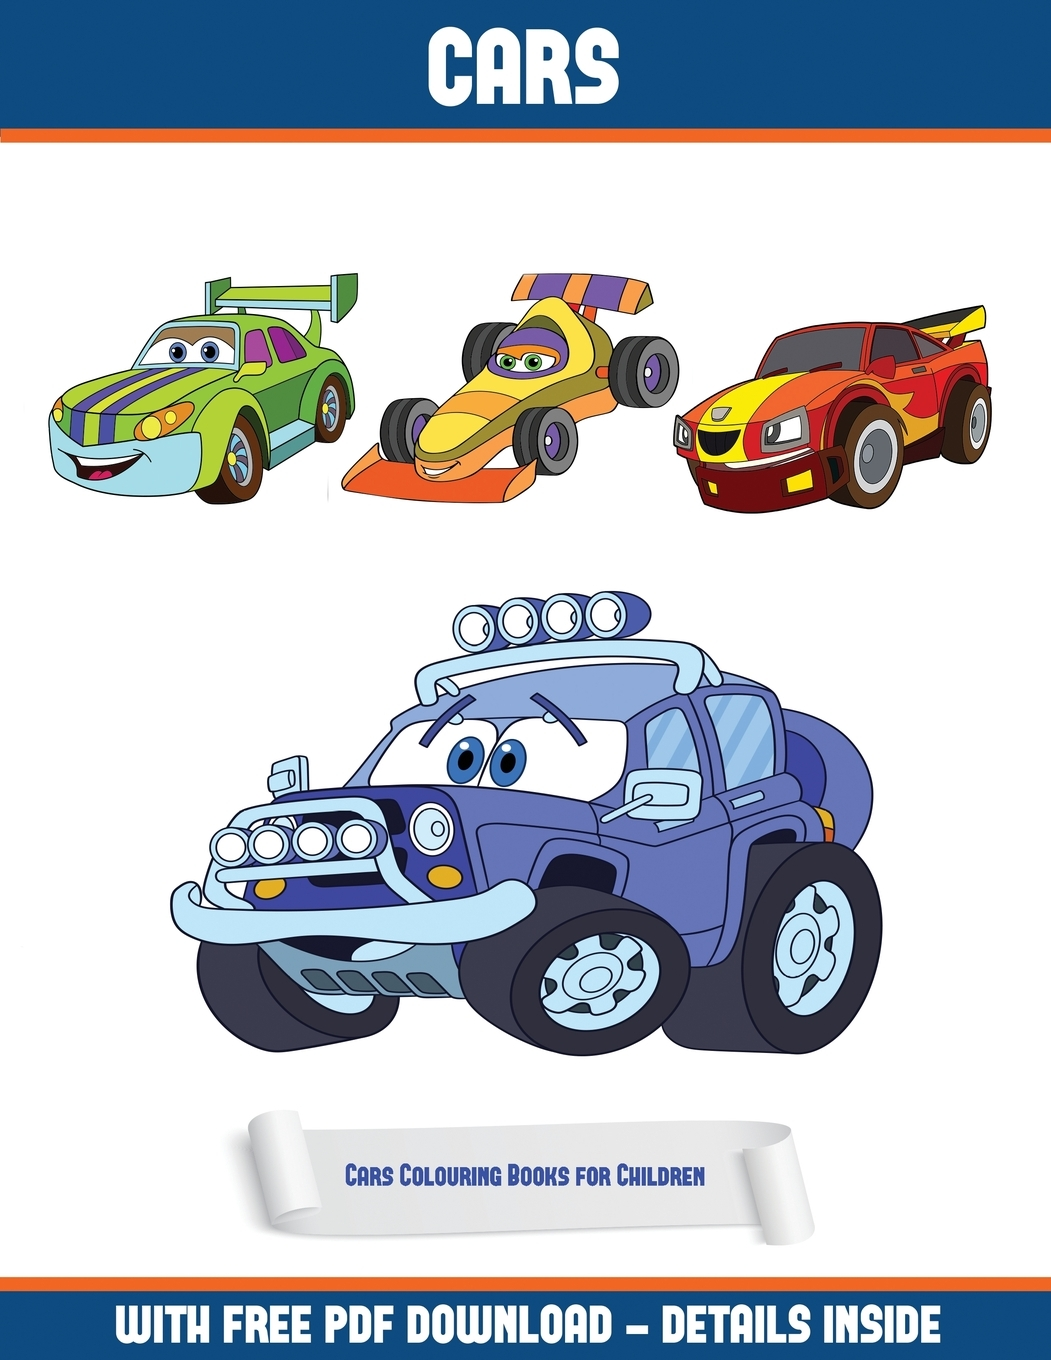 Cars Colouring Books For Children (Cars): Cars Colouring Books For Children  (Cars) : A Cars Coloring (